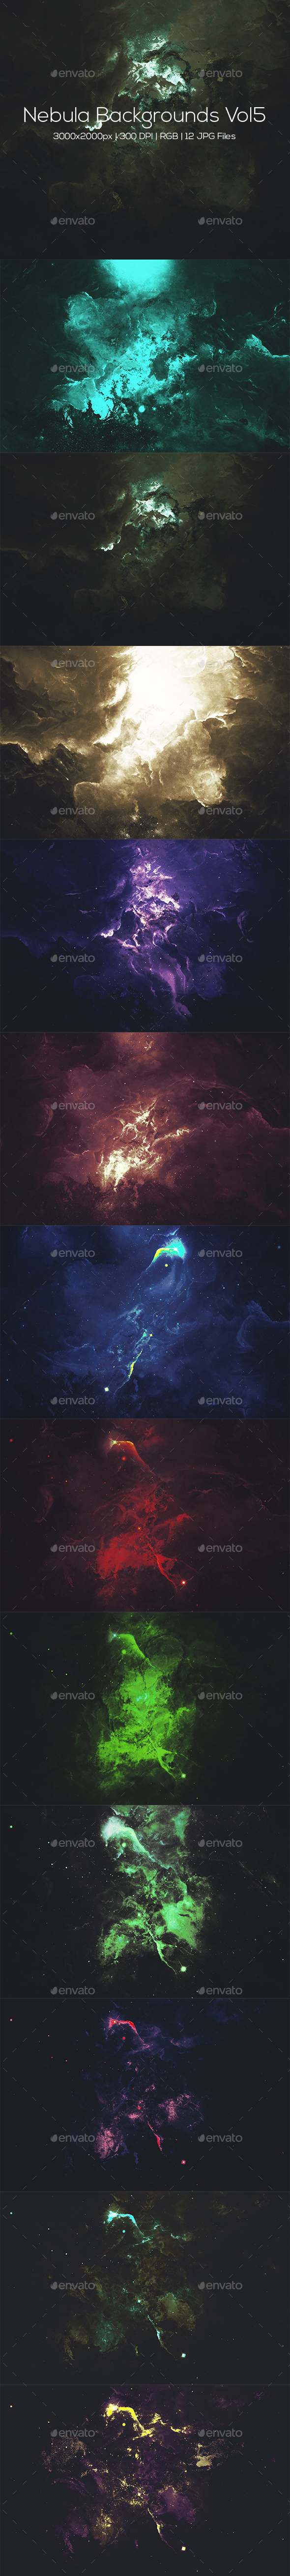 Nebula Backgrounds Vol5 - Abstract Backgrounds